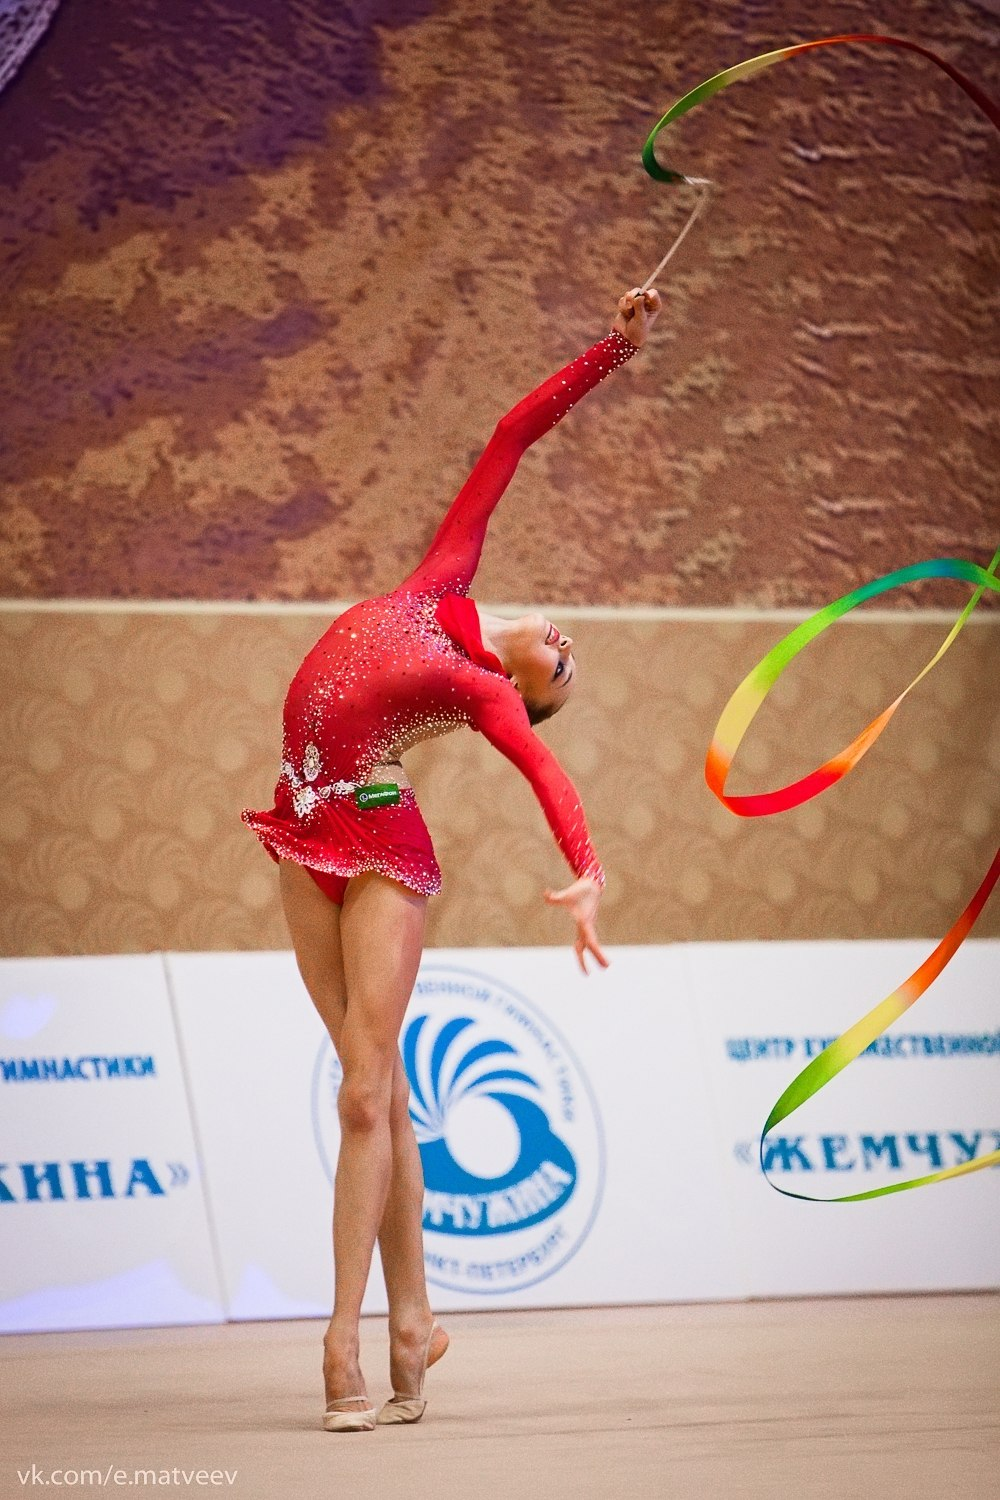 Russian Freediving Championship: Russian Championships In St. Petersburg 31 Oct